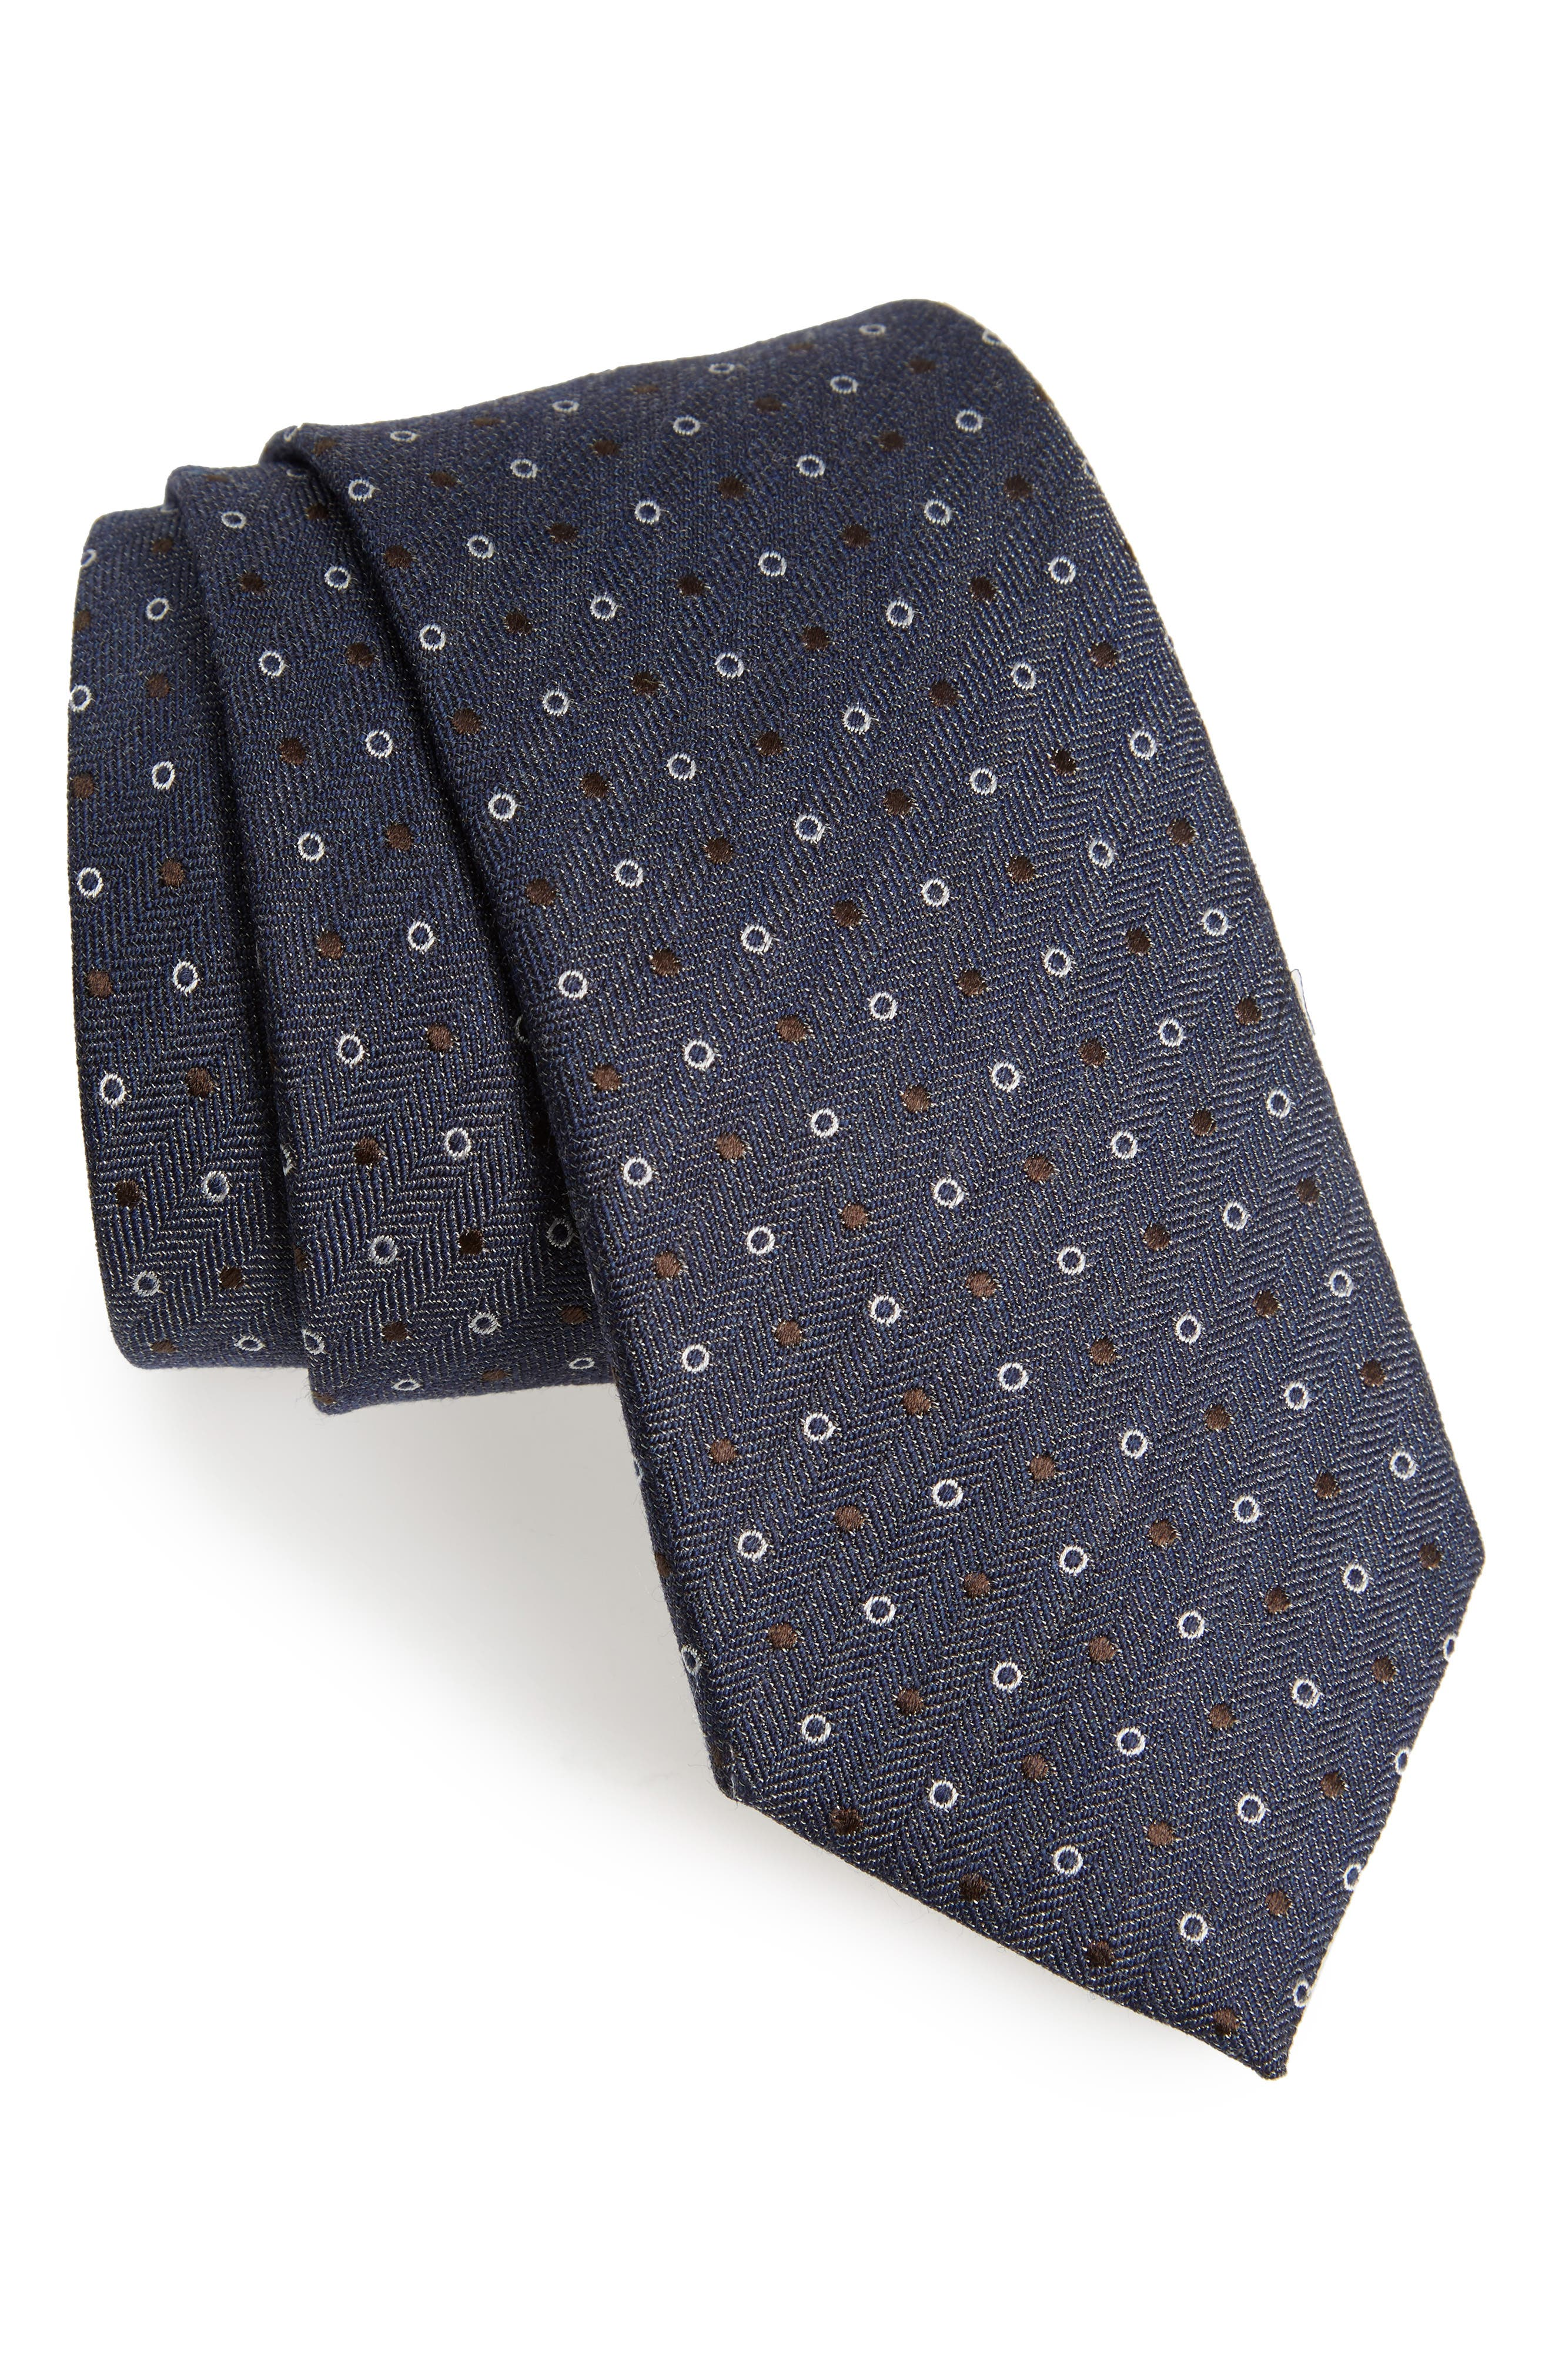 Main Image - Canali Dotted Wool & Silk Tie